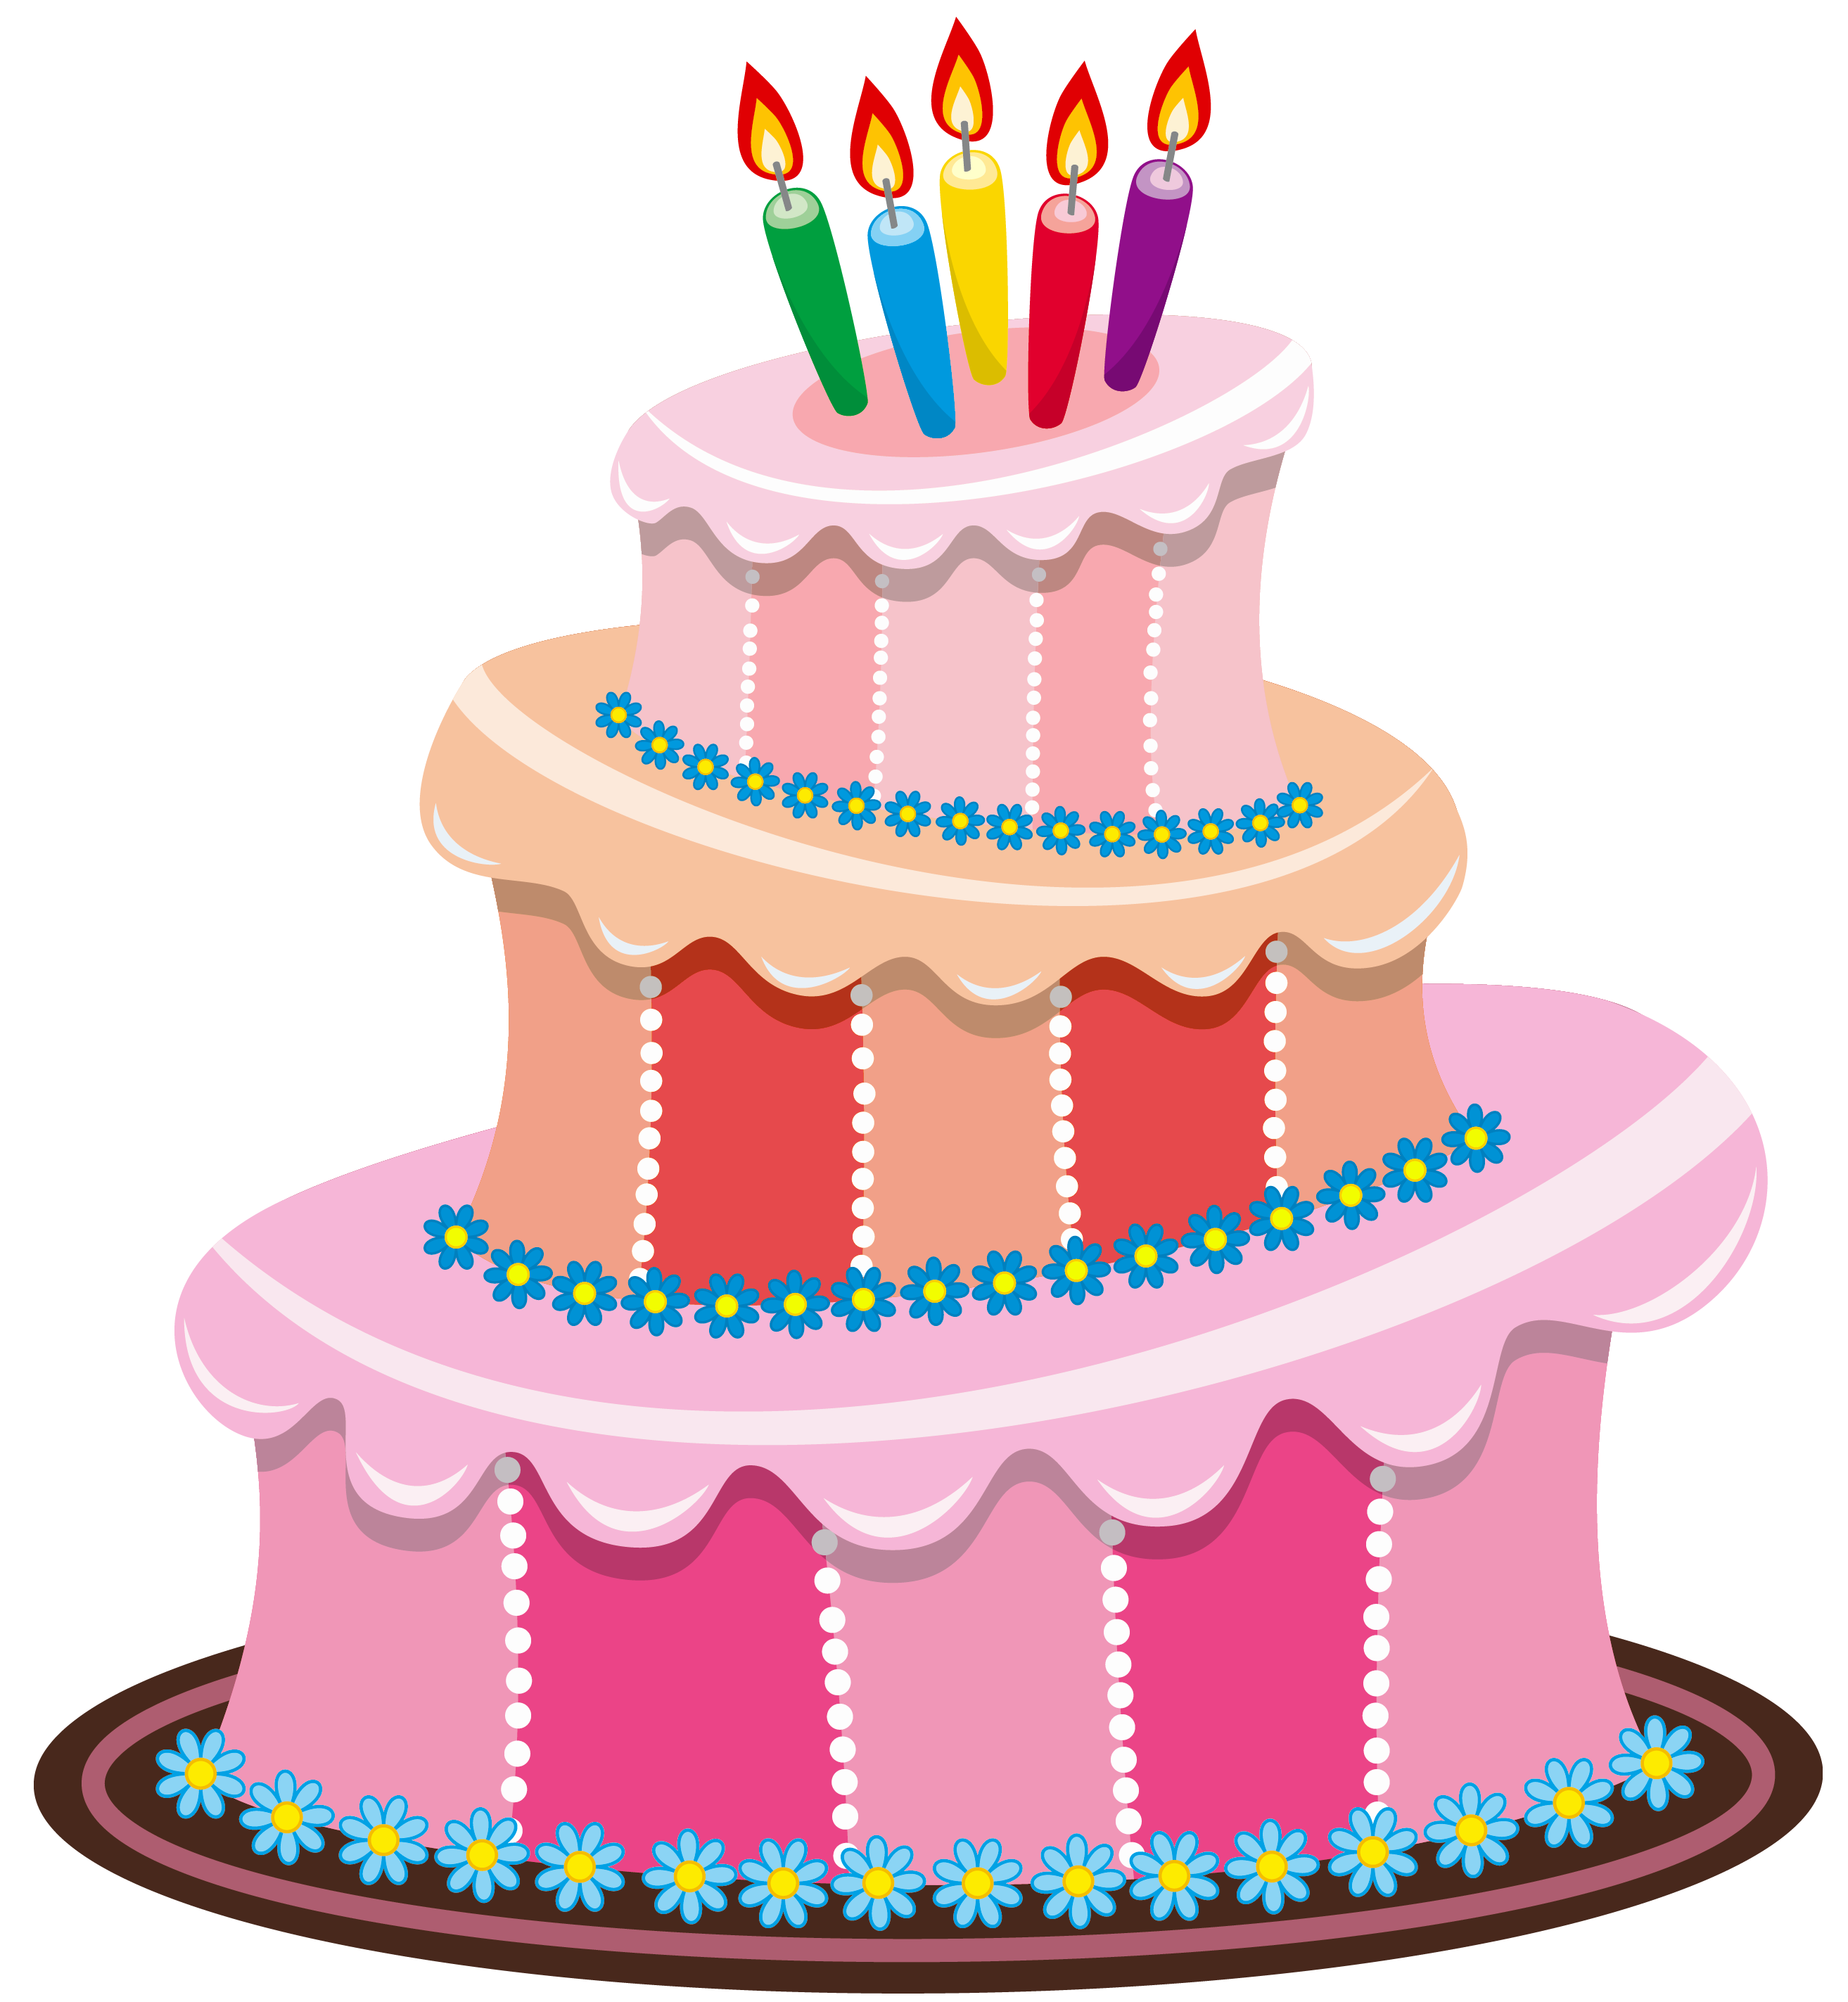 Happy birthday cake with 5 candles png. Pink clipart gallery yopriceville freeuse download